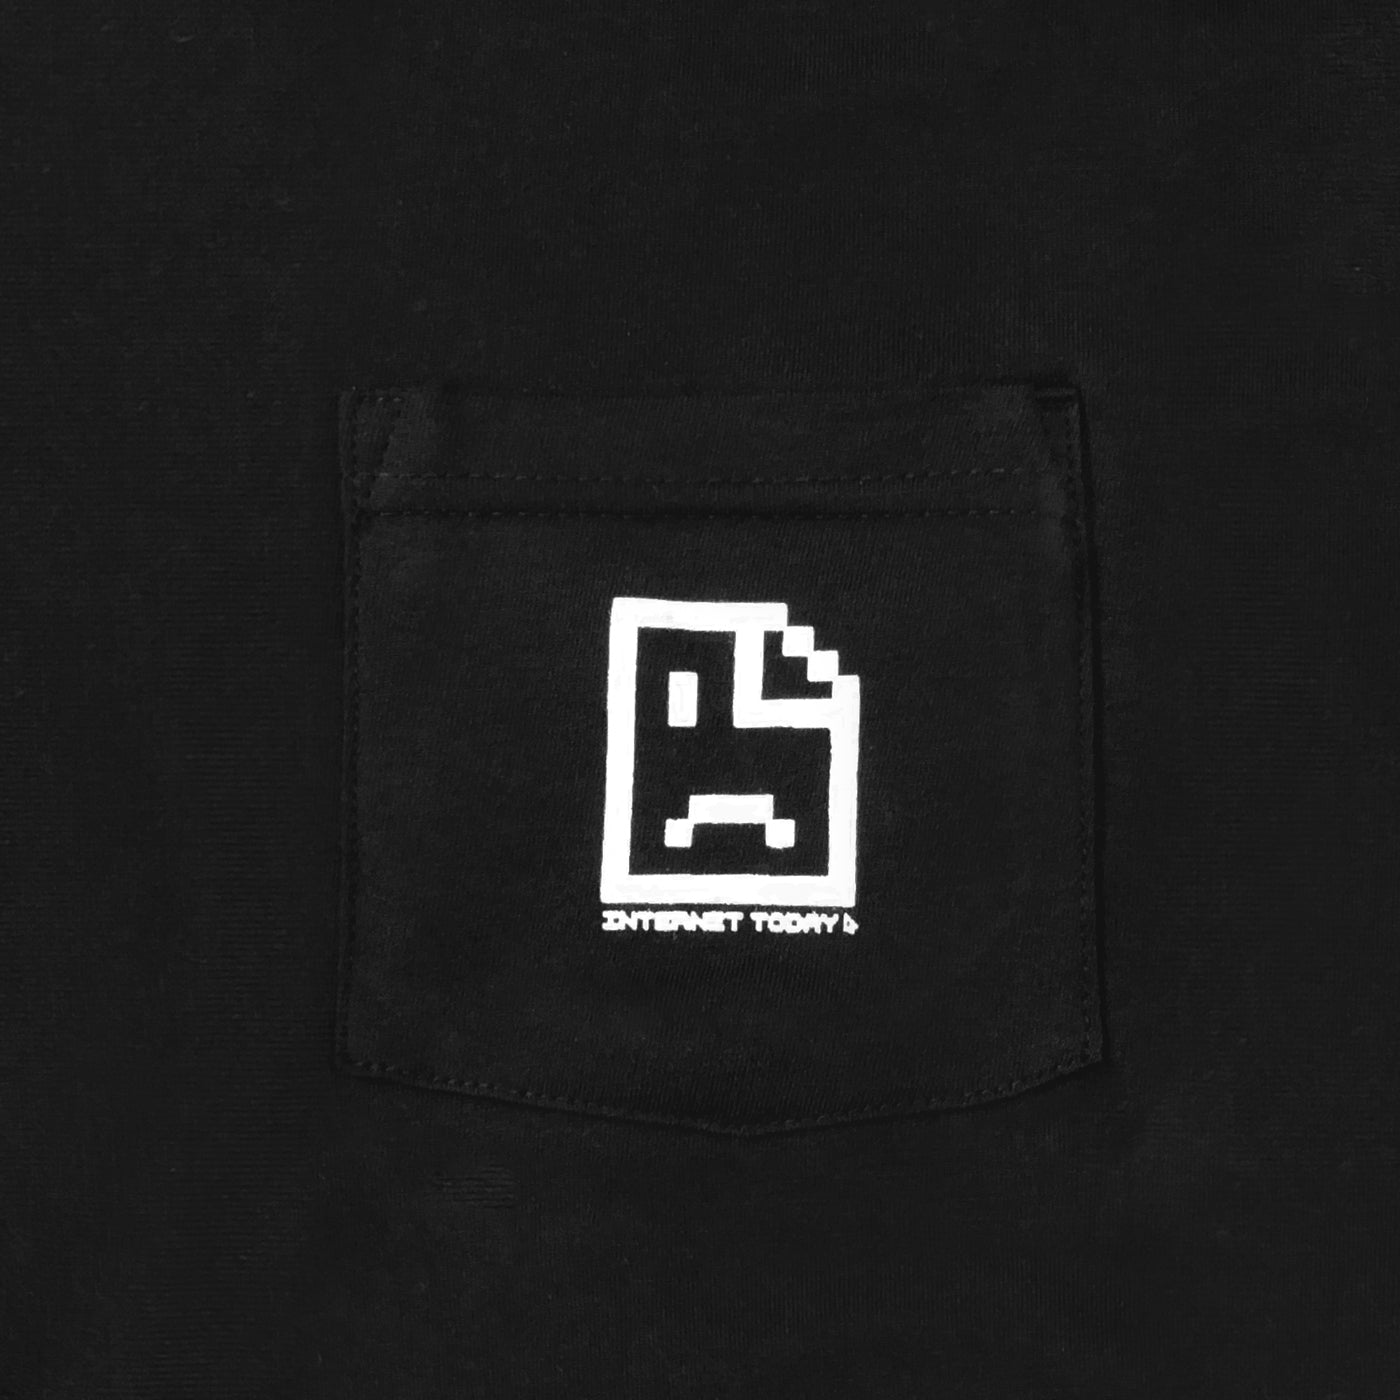 INTERNET TODAY® | SAD FACE POCKET TEE (BLACK) LIMITED EDITION